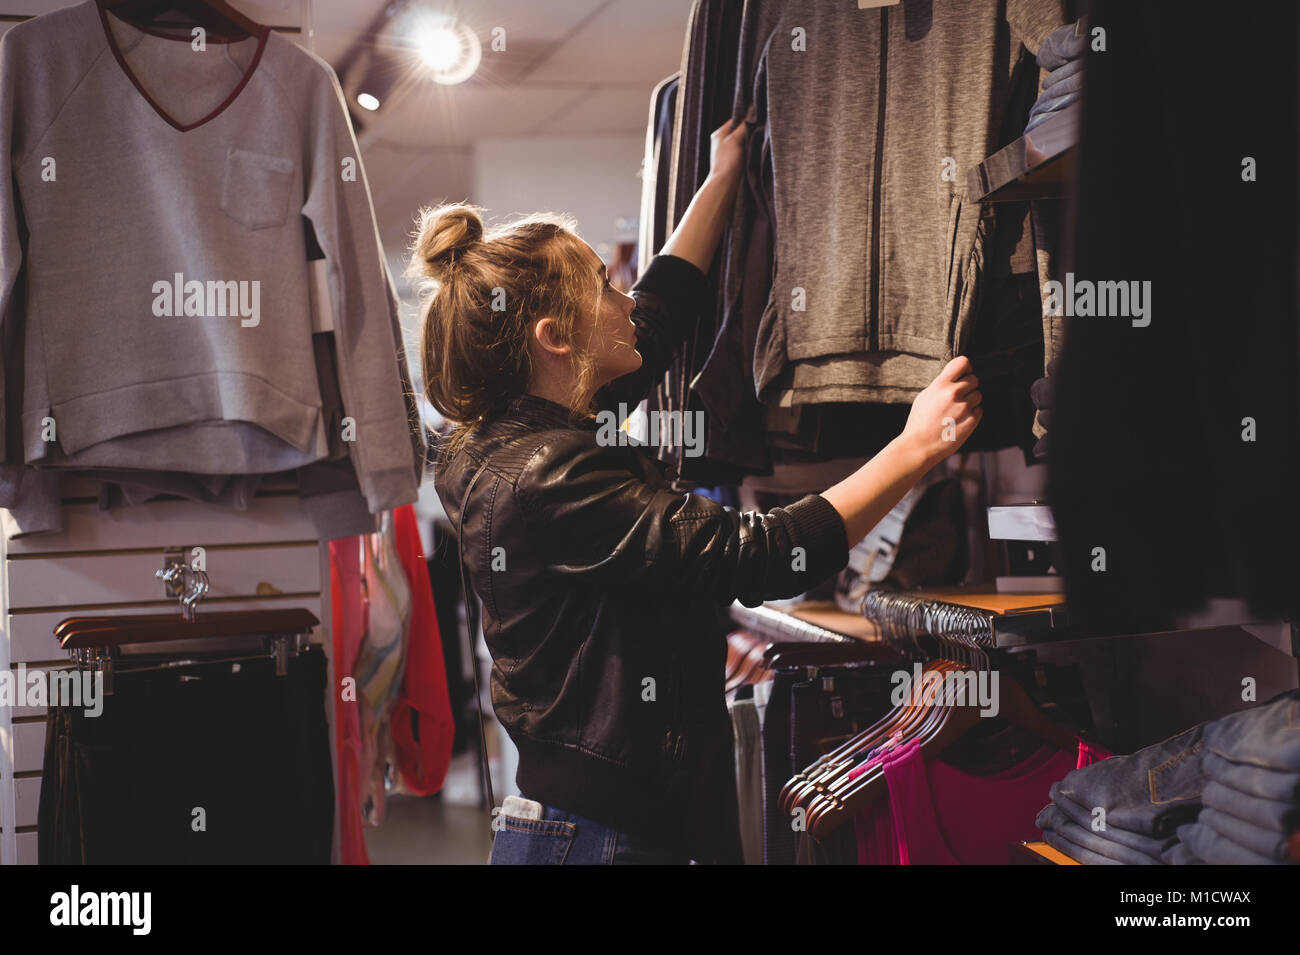 Belle woman shopping for clothes Banque D'Images